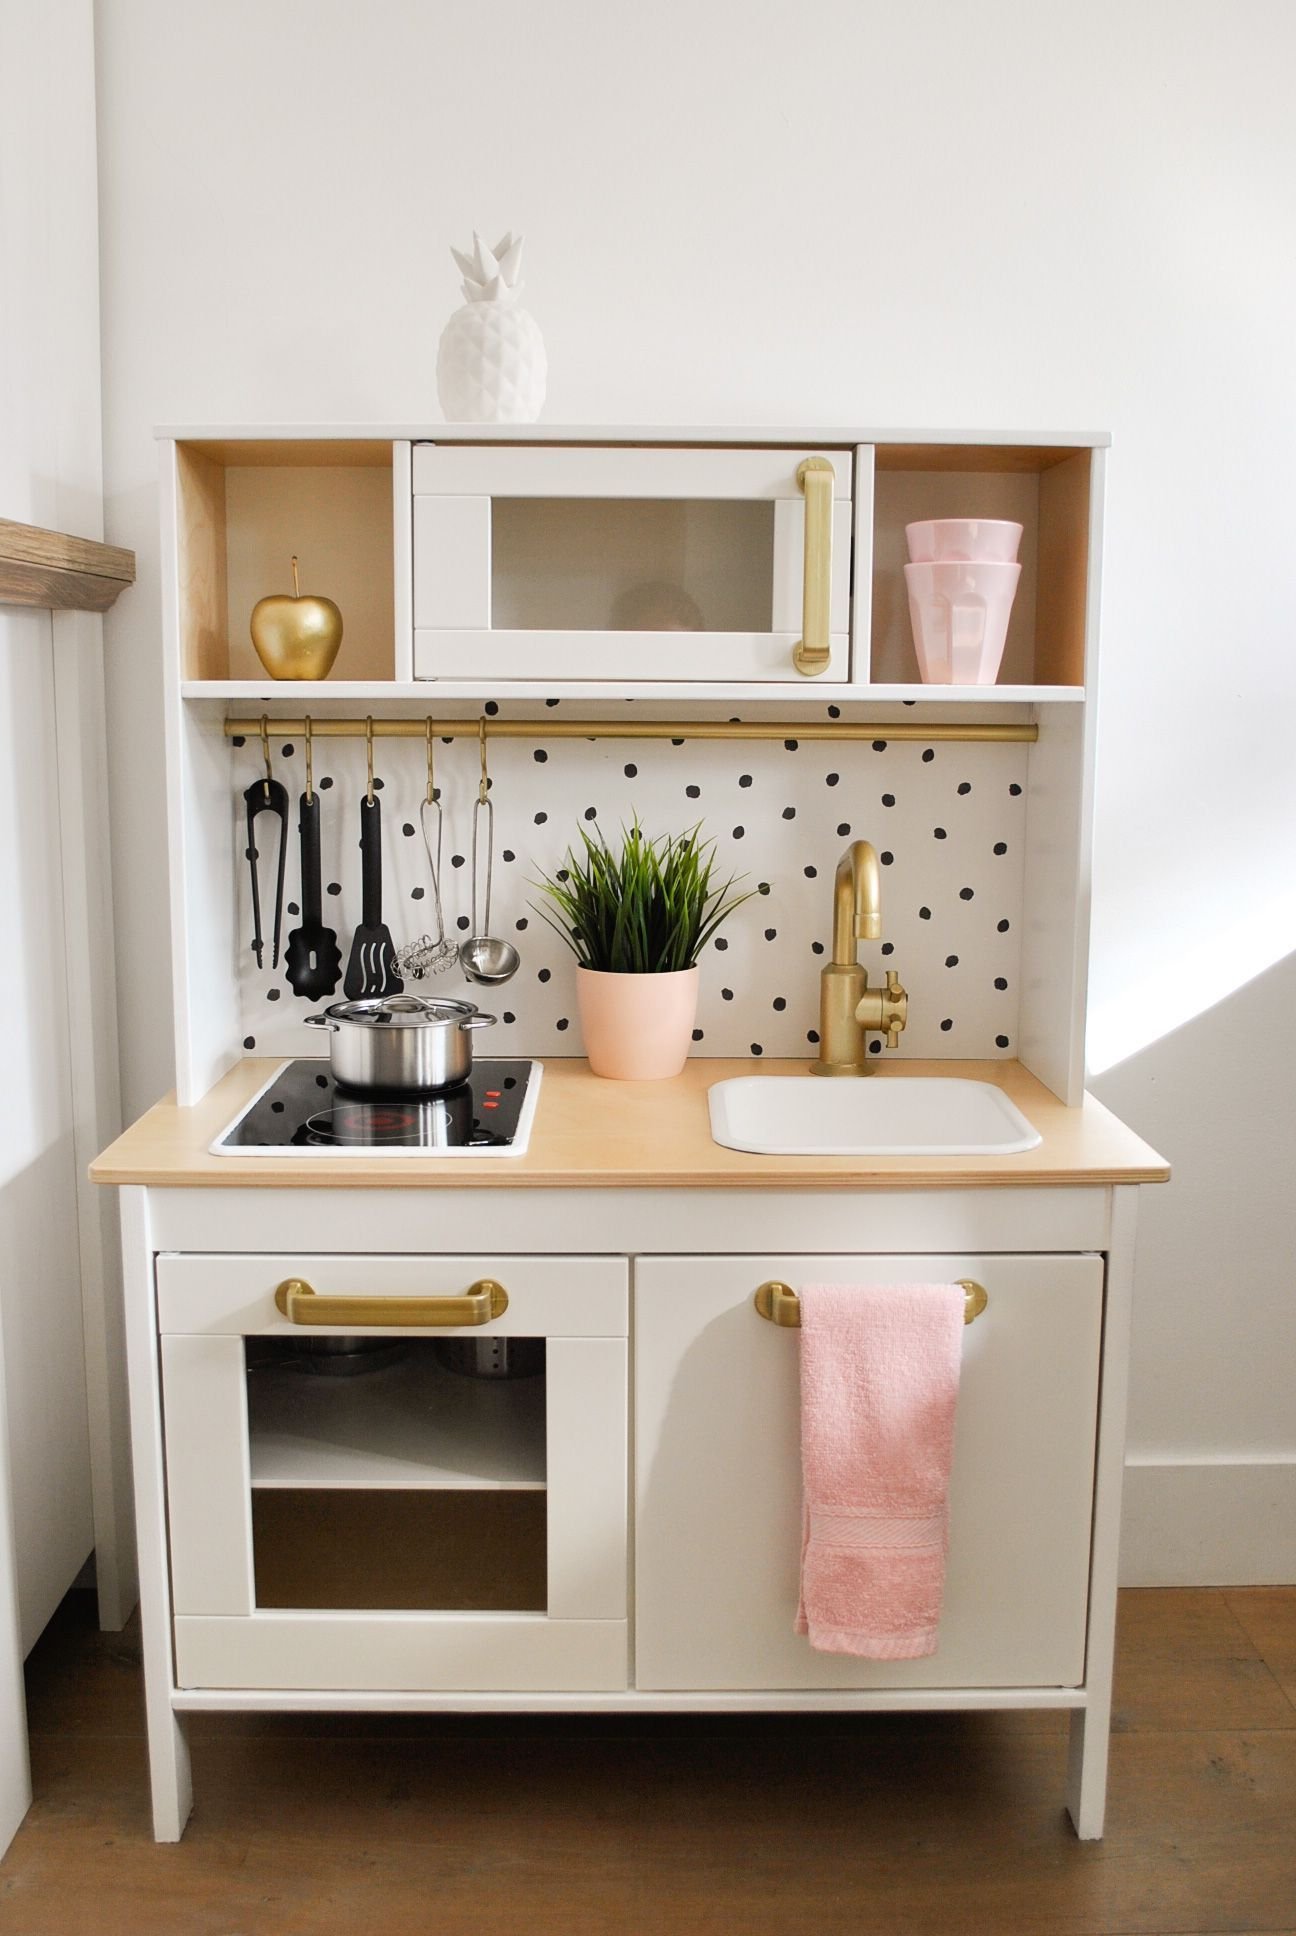 Ikea Küche Side By Side Kühlschrank The Advantages Of Play Kitchens For Kid - Our Bright Side | Ikea Kids Kitchen, Ikea Play Kitchen, Diy Play Kitchen